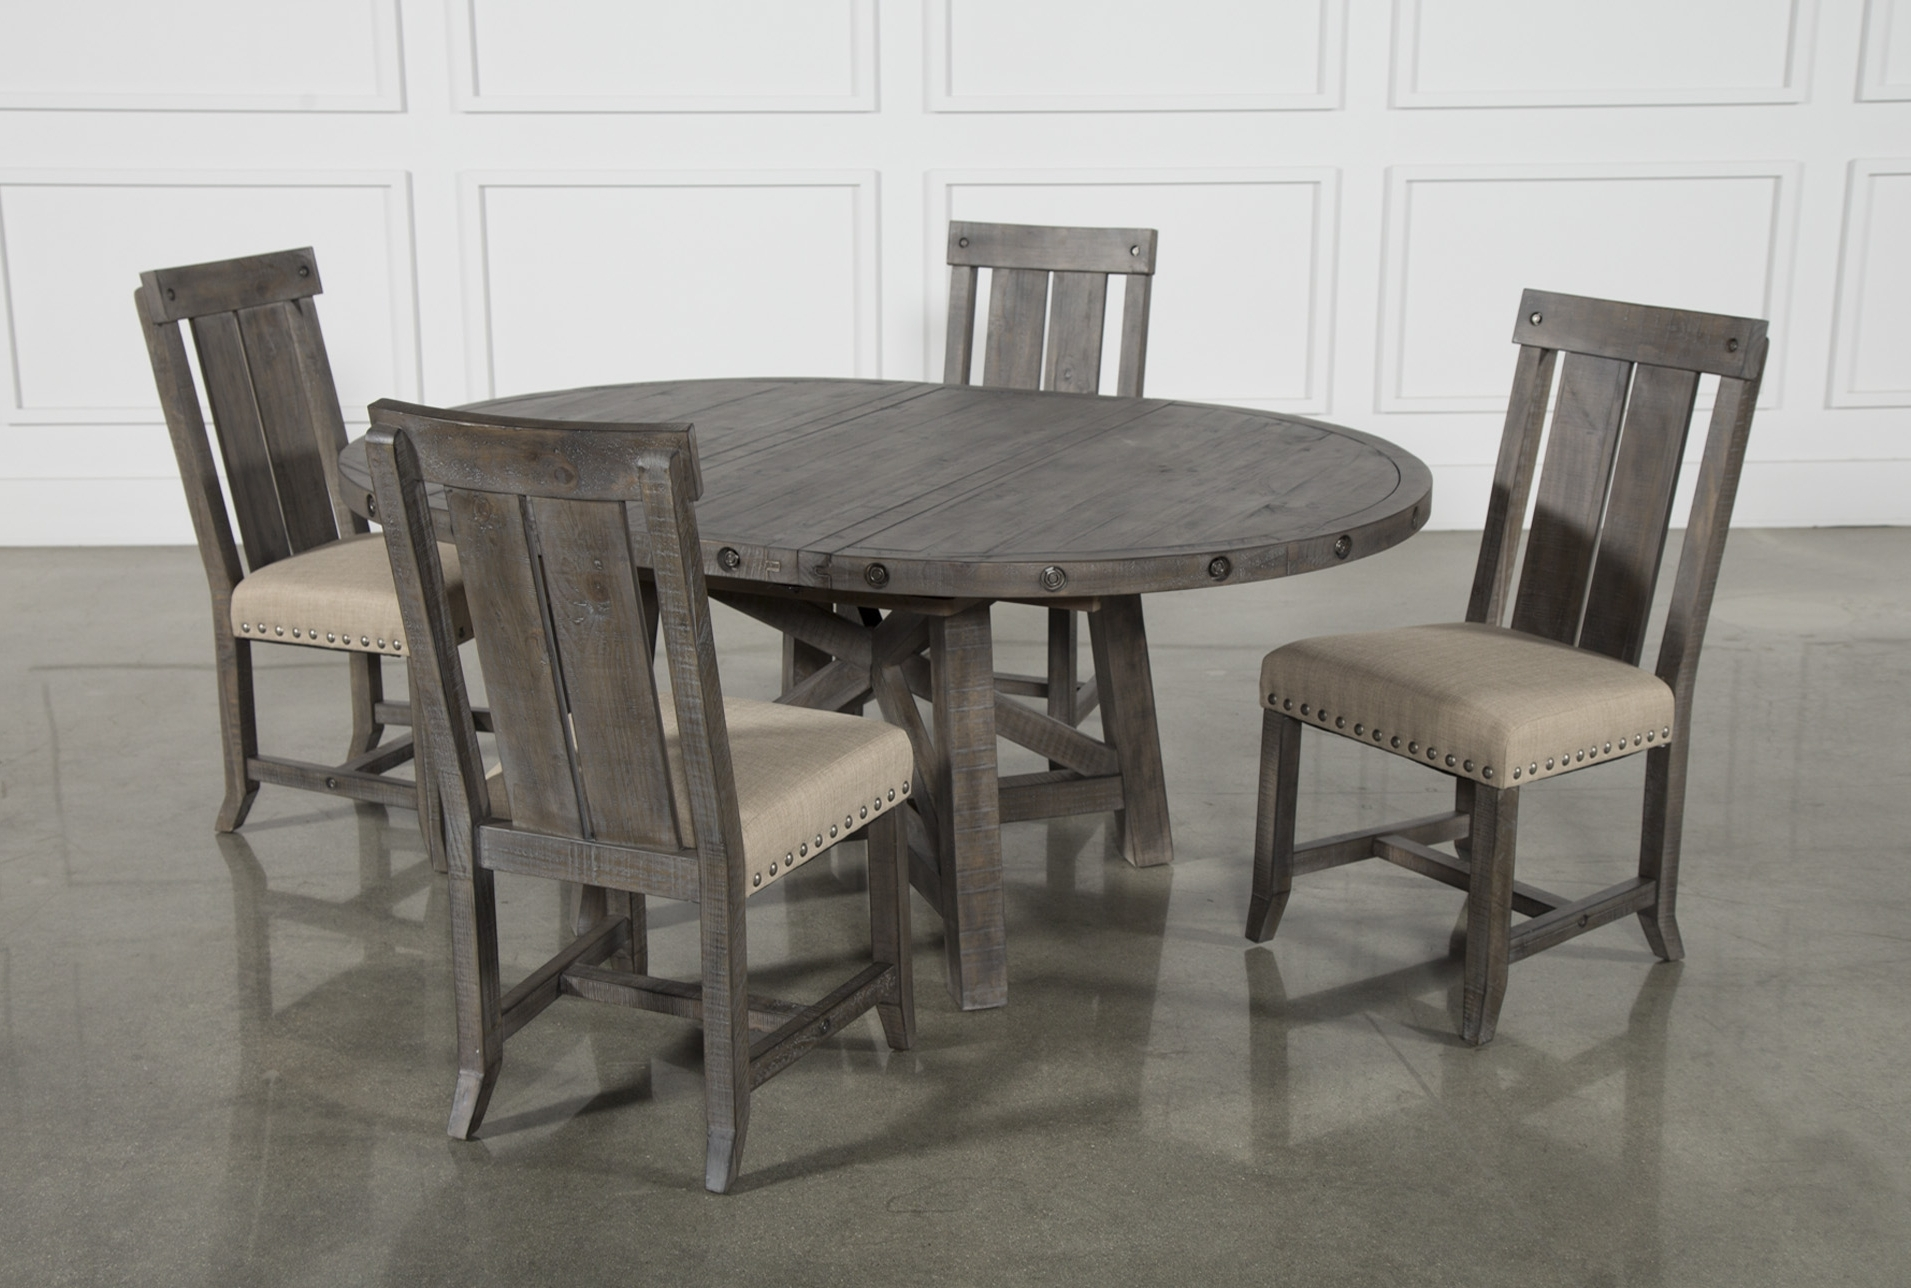 Jaxon 5 Piece Extension Round Dining Sets With Wood Chairs With Regard To Most Up To Date Jaxon Grey 5 Piece Round Extension Dining Set W/wood Chairs (View 10 of 25)